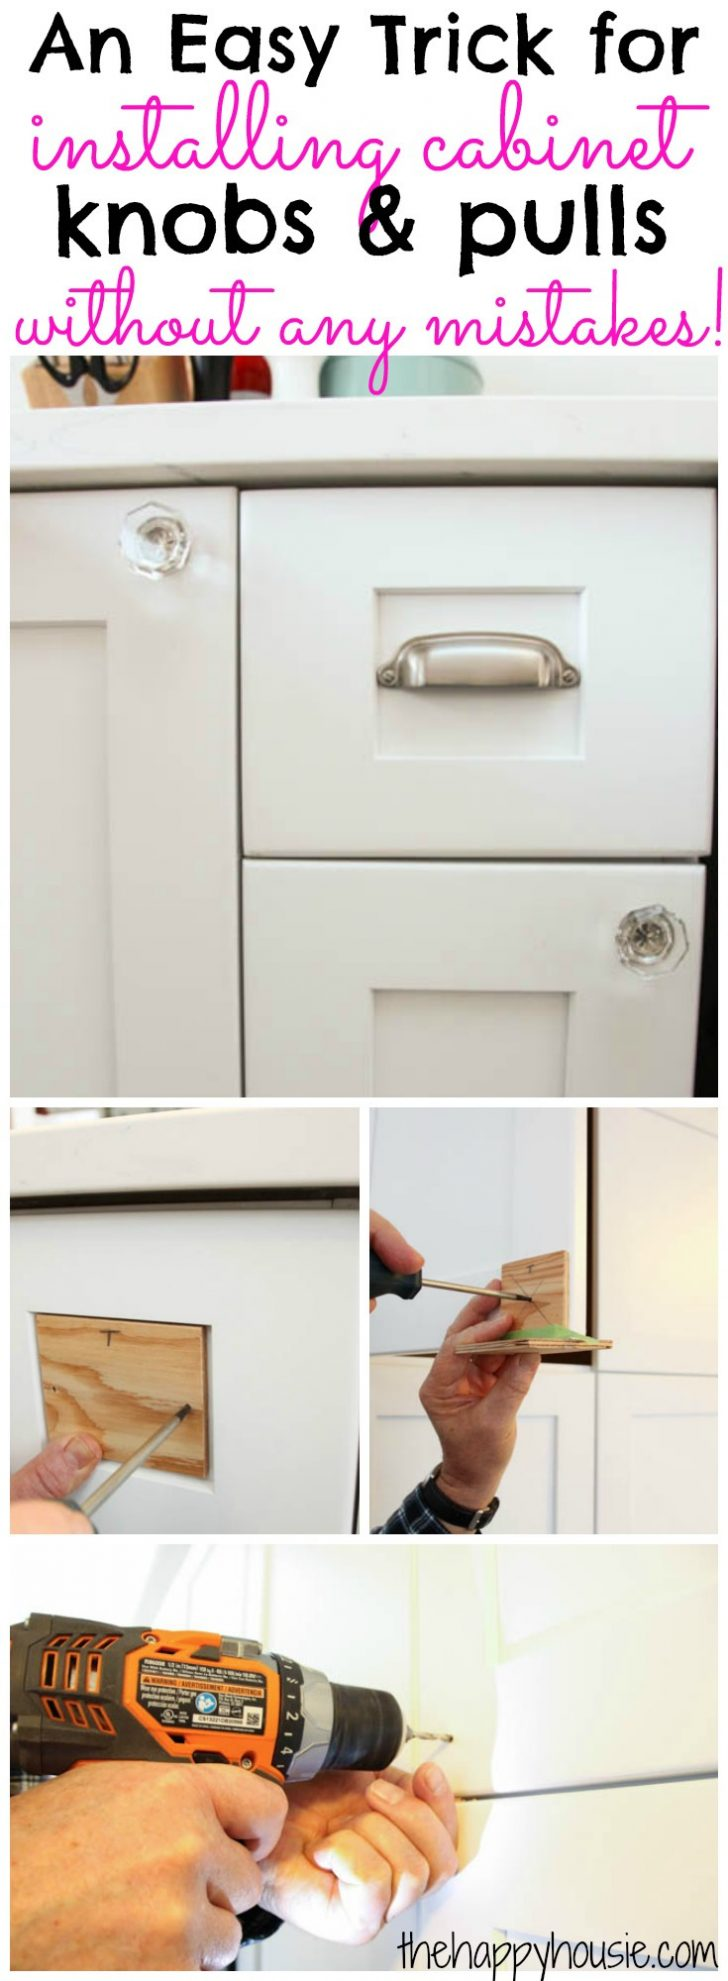 How to Install Cabinet Doors 2020